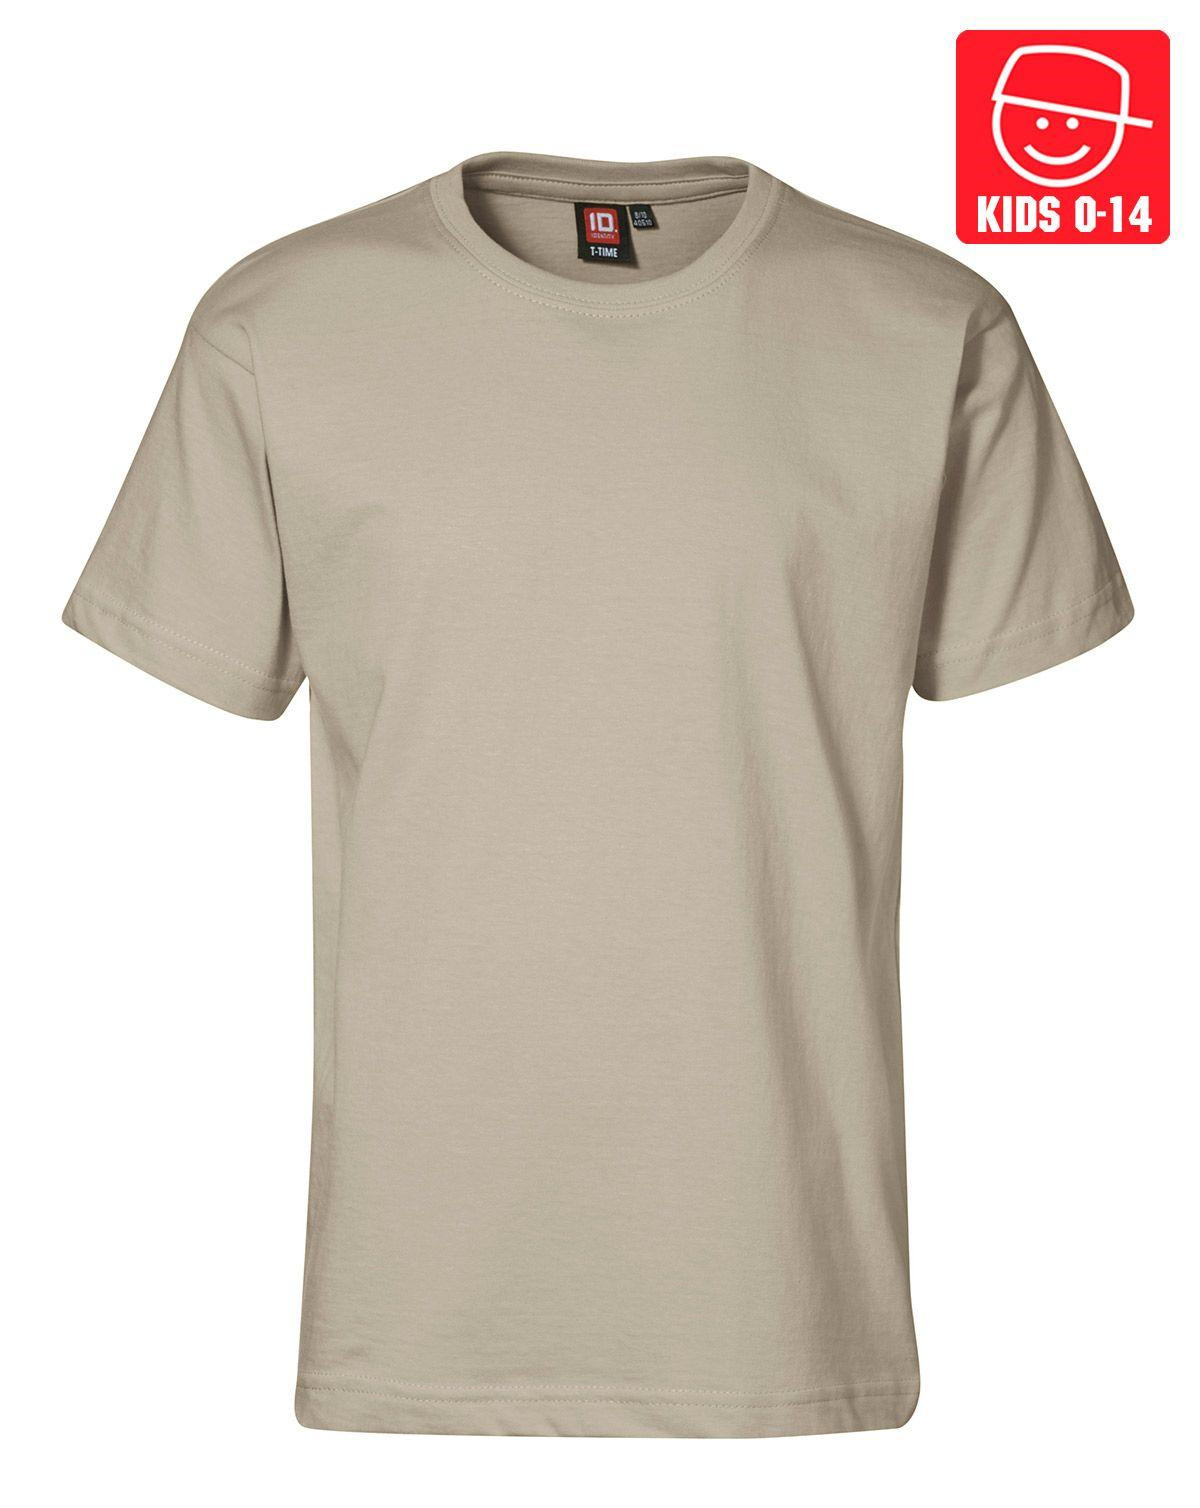 Image of   ID T-TIME T-shirt (Khaki, 122)